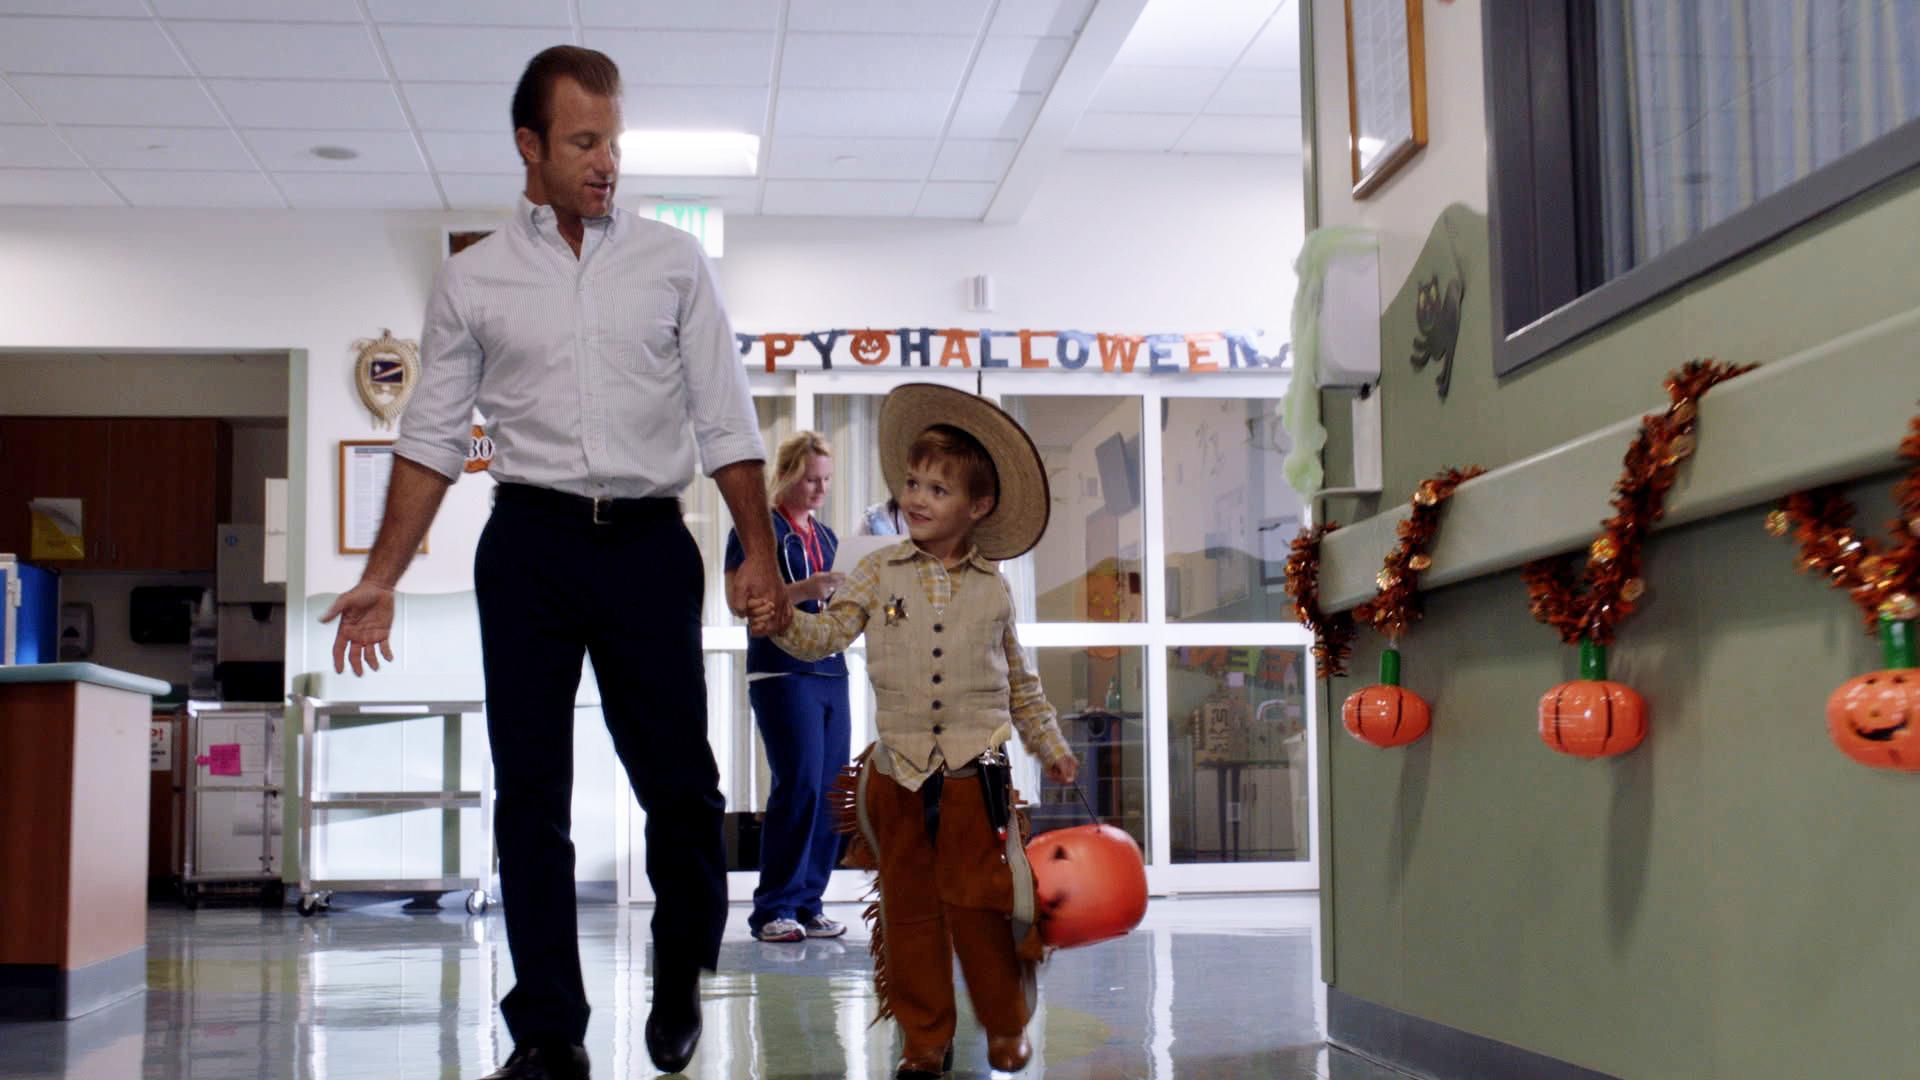 Danno being there for his kids